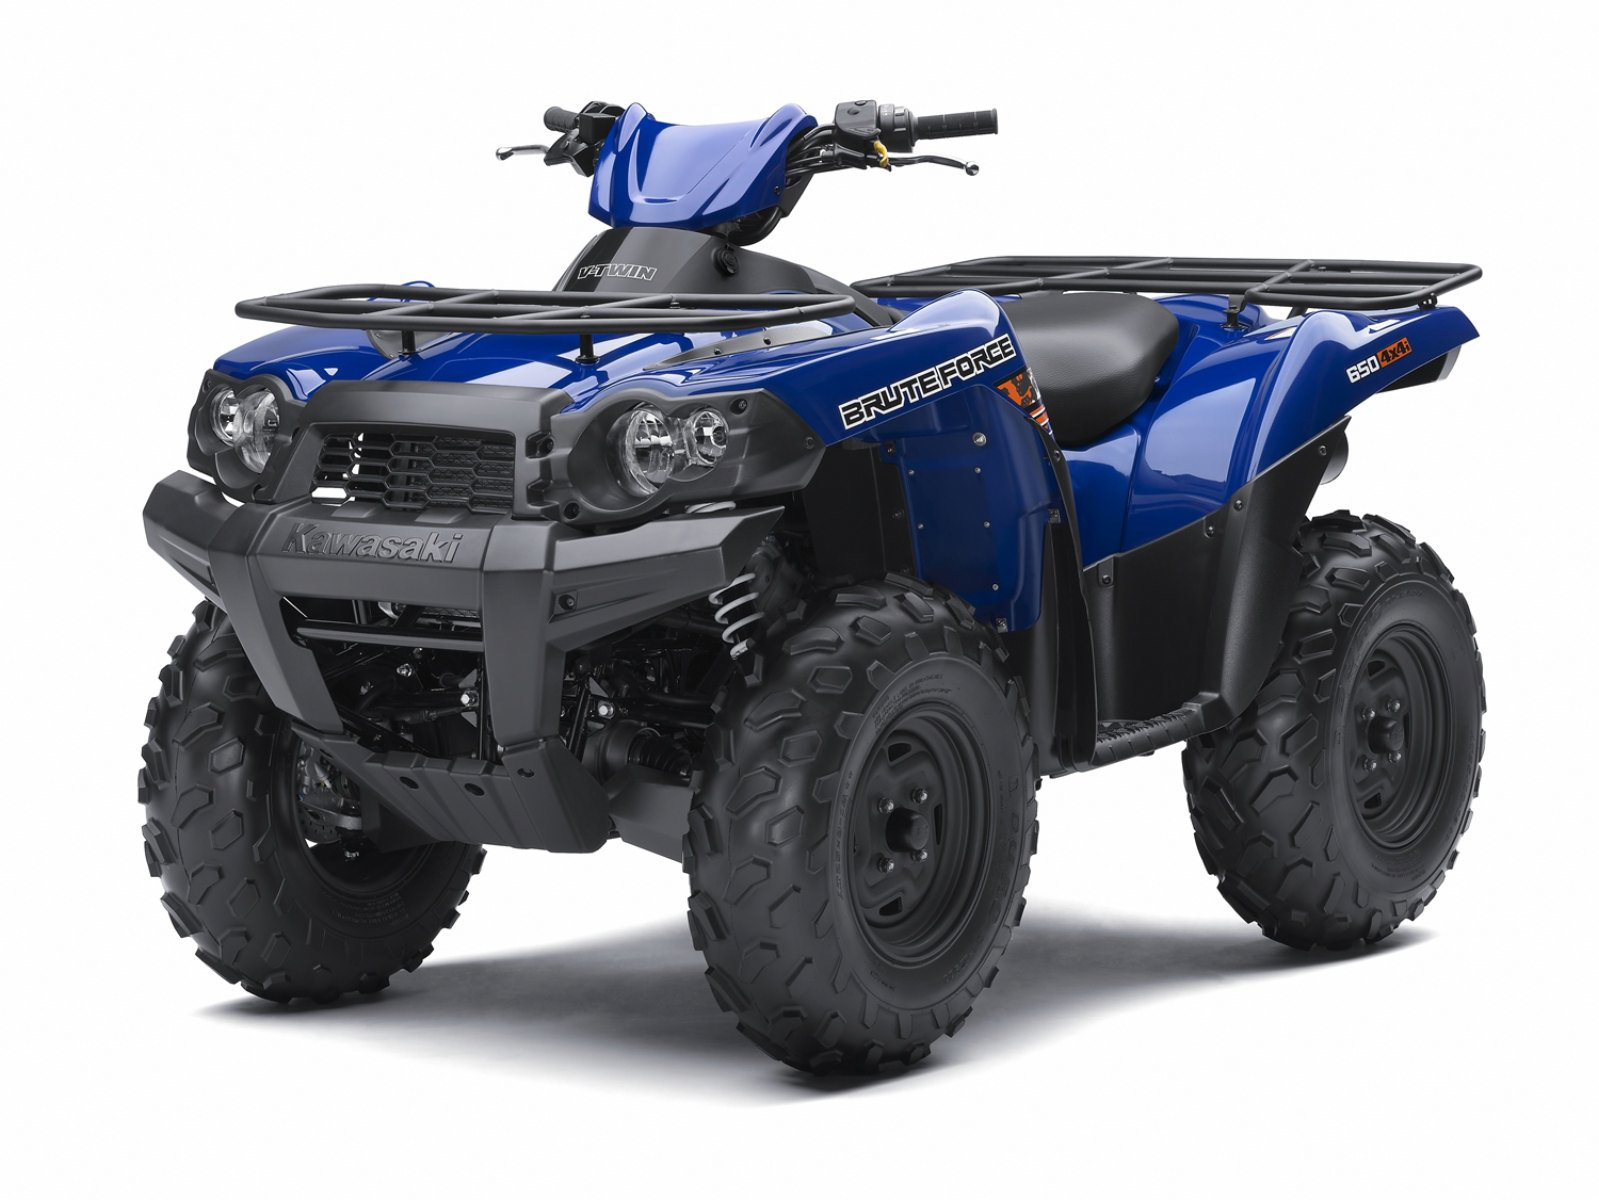 2012 Kawasaki Brute Force 650 4x4i Top Speed